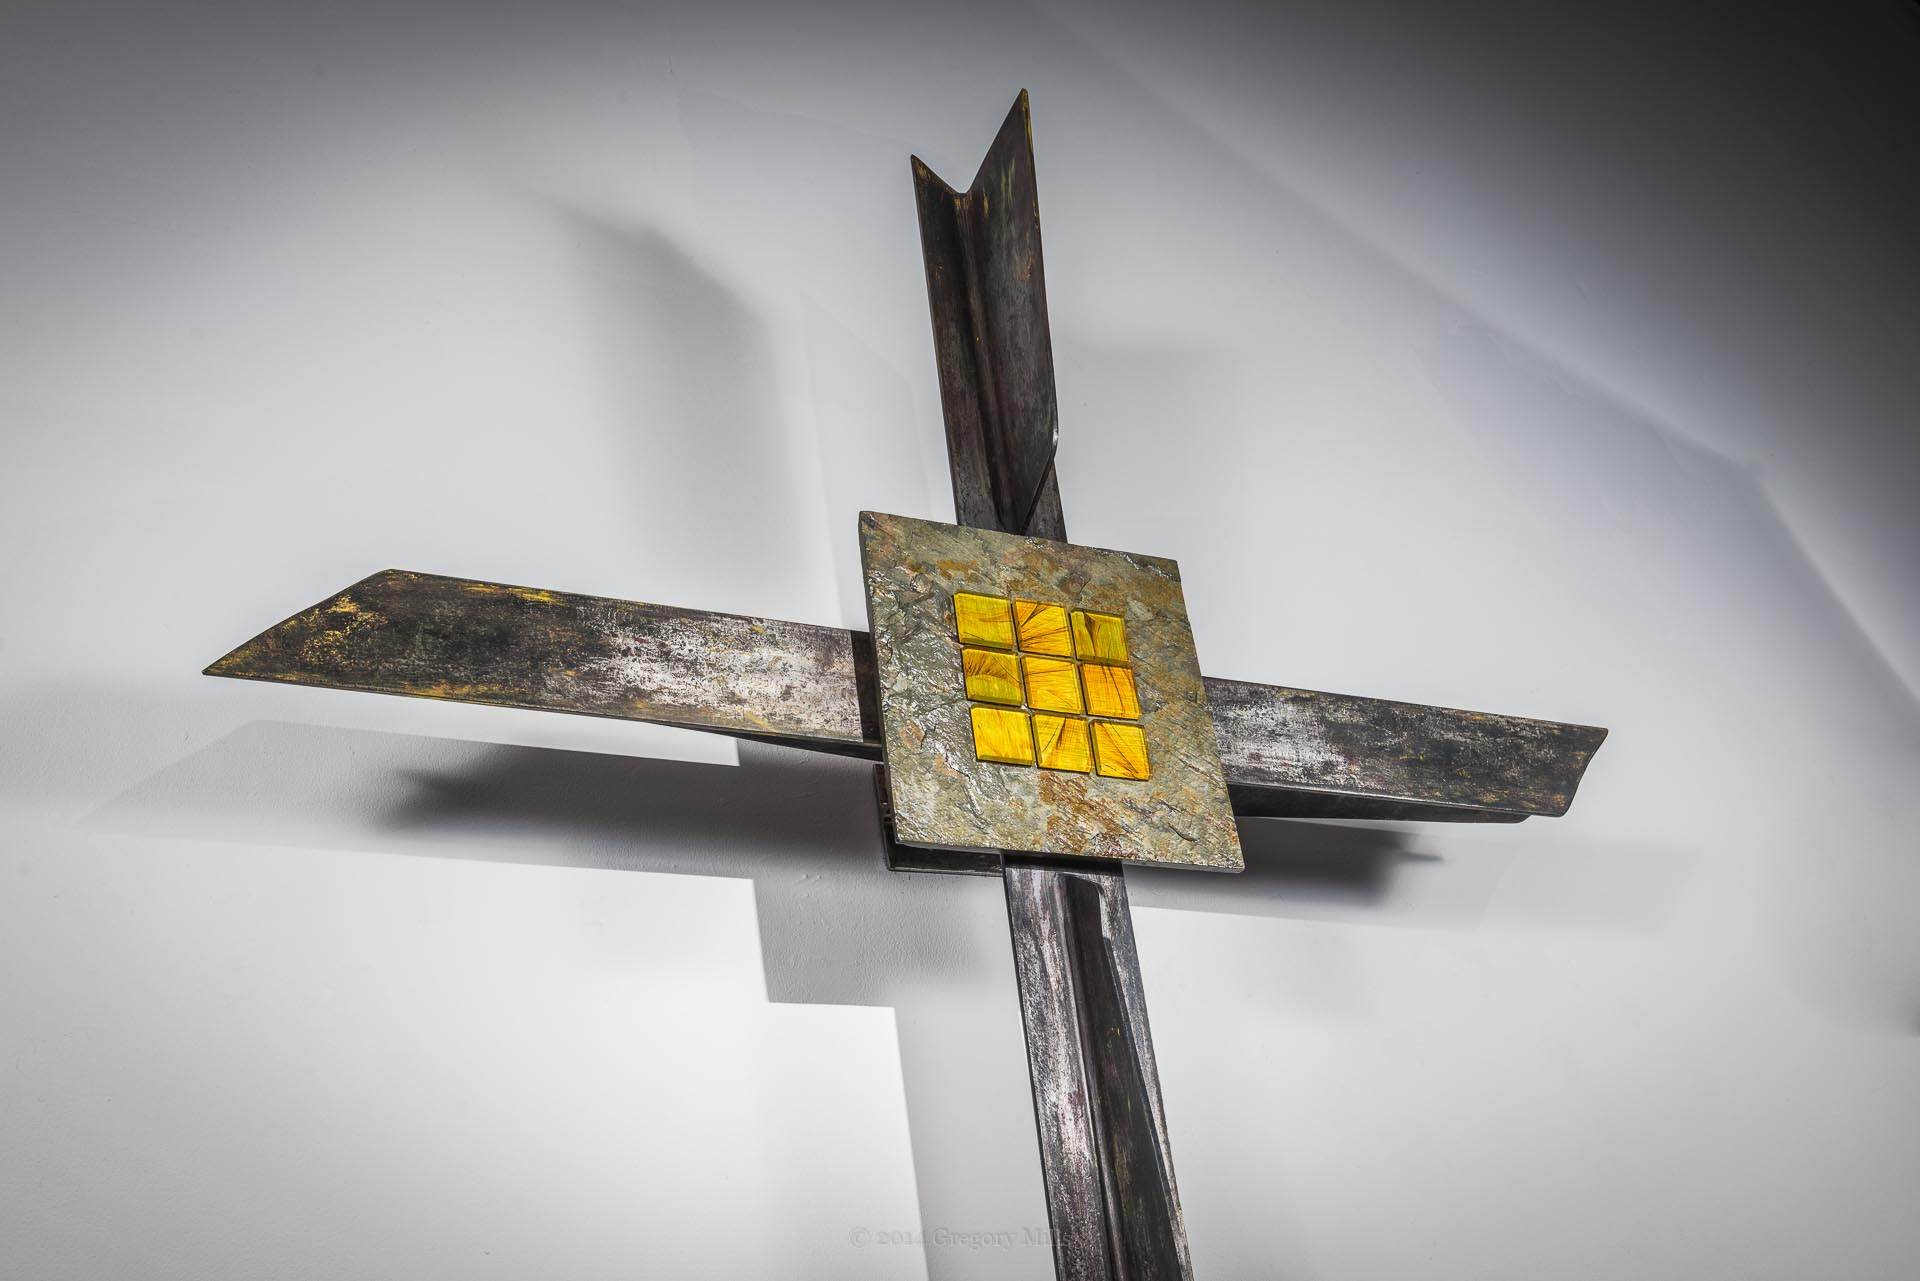 Cross Honors Those Who Built the Education Building